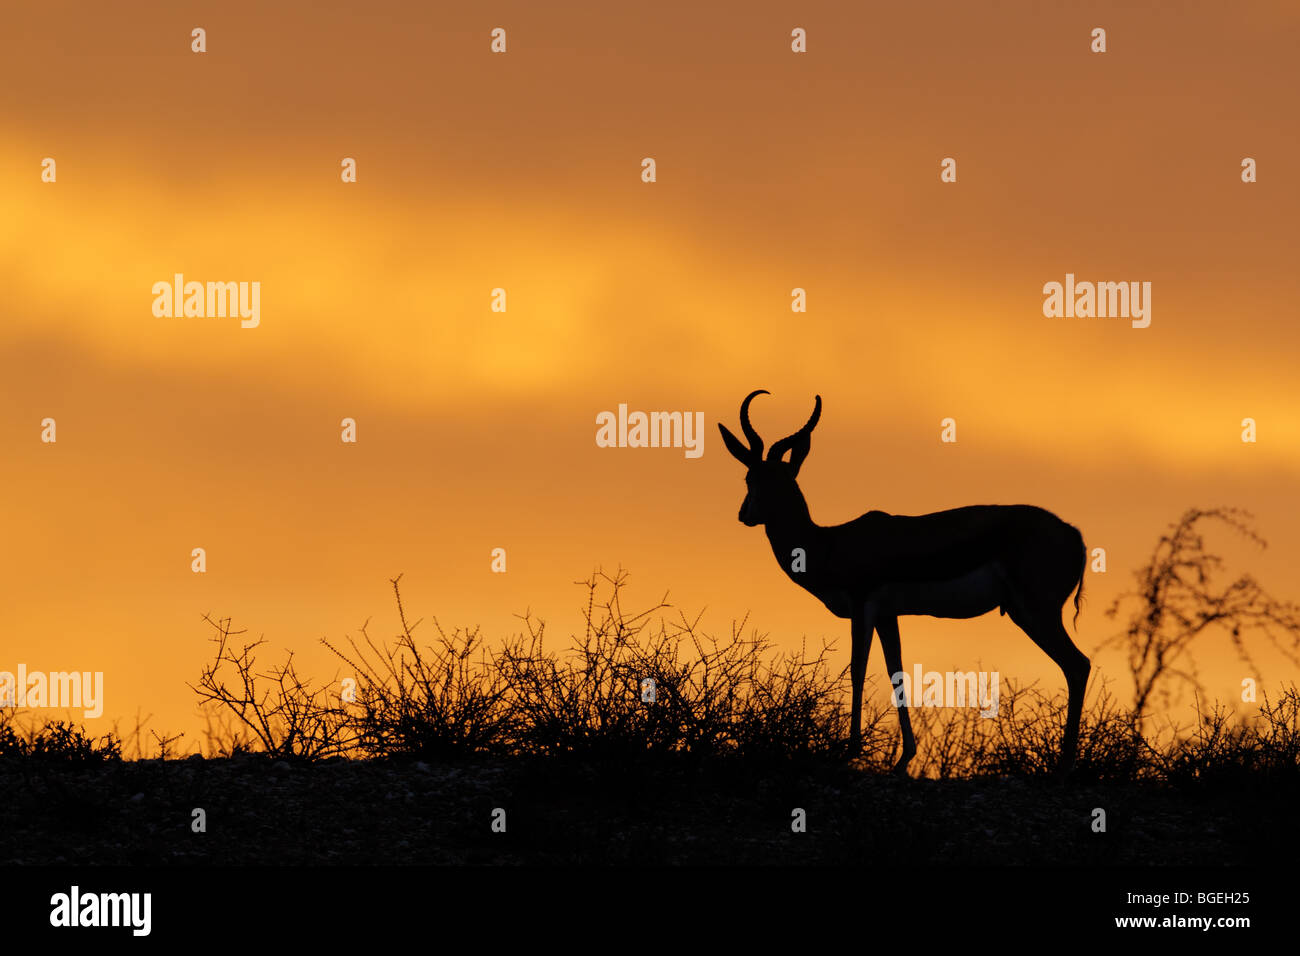 Springbok antelope (Antidorcas marsupialis) silhouetted against a red sky, Kgalagadi Transfrontier Park, South Africa - Stock Image